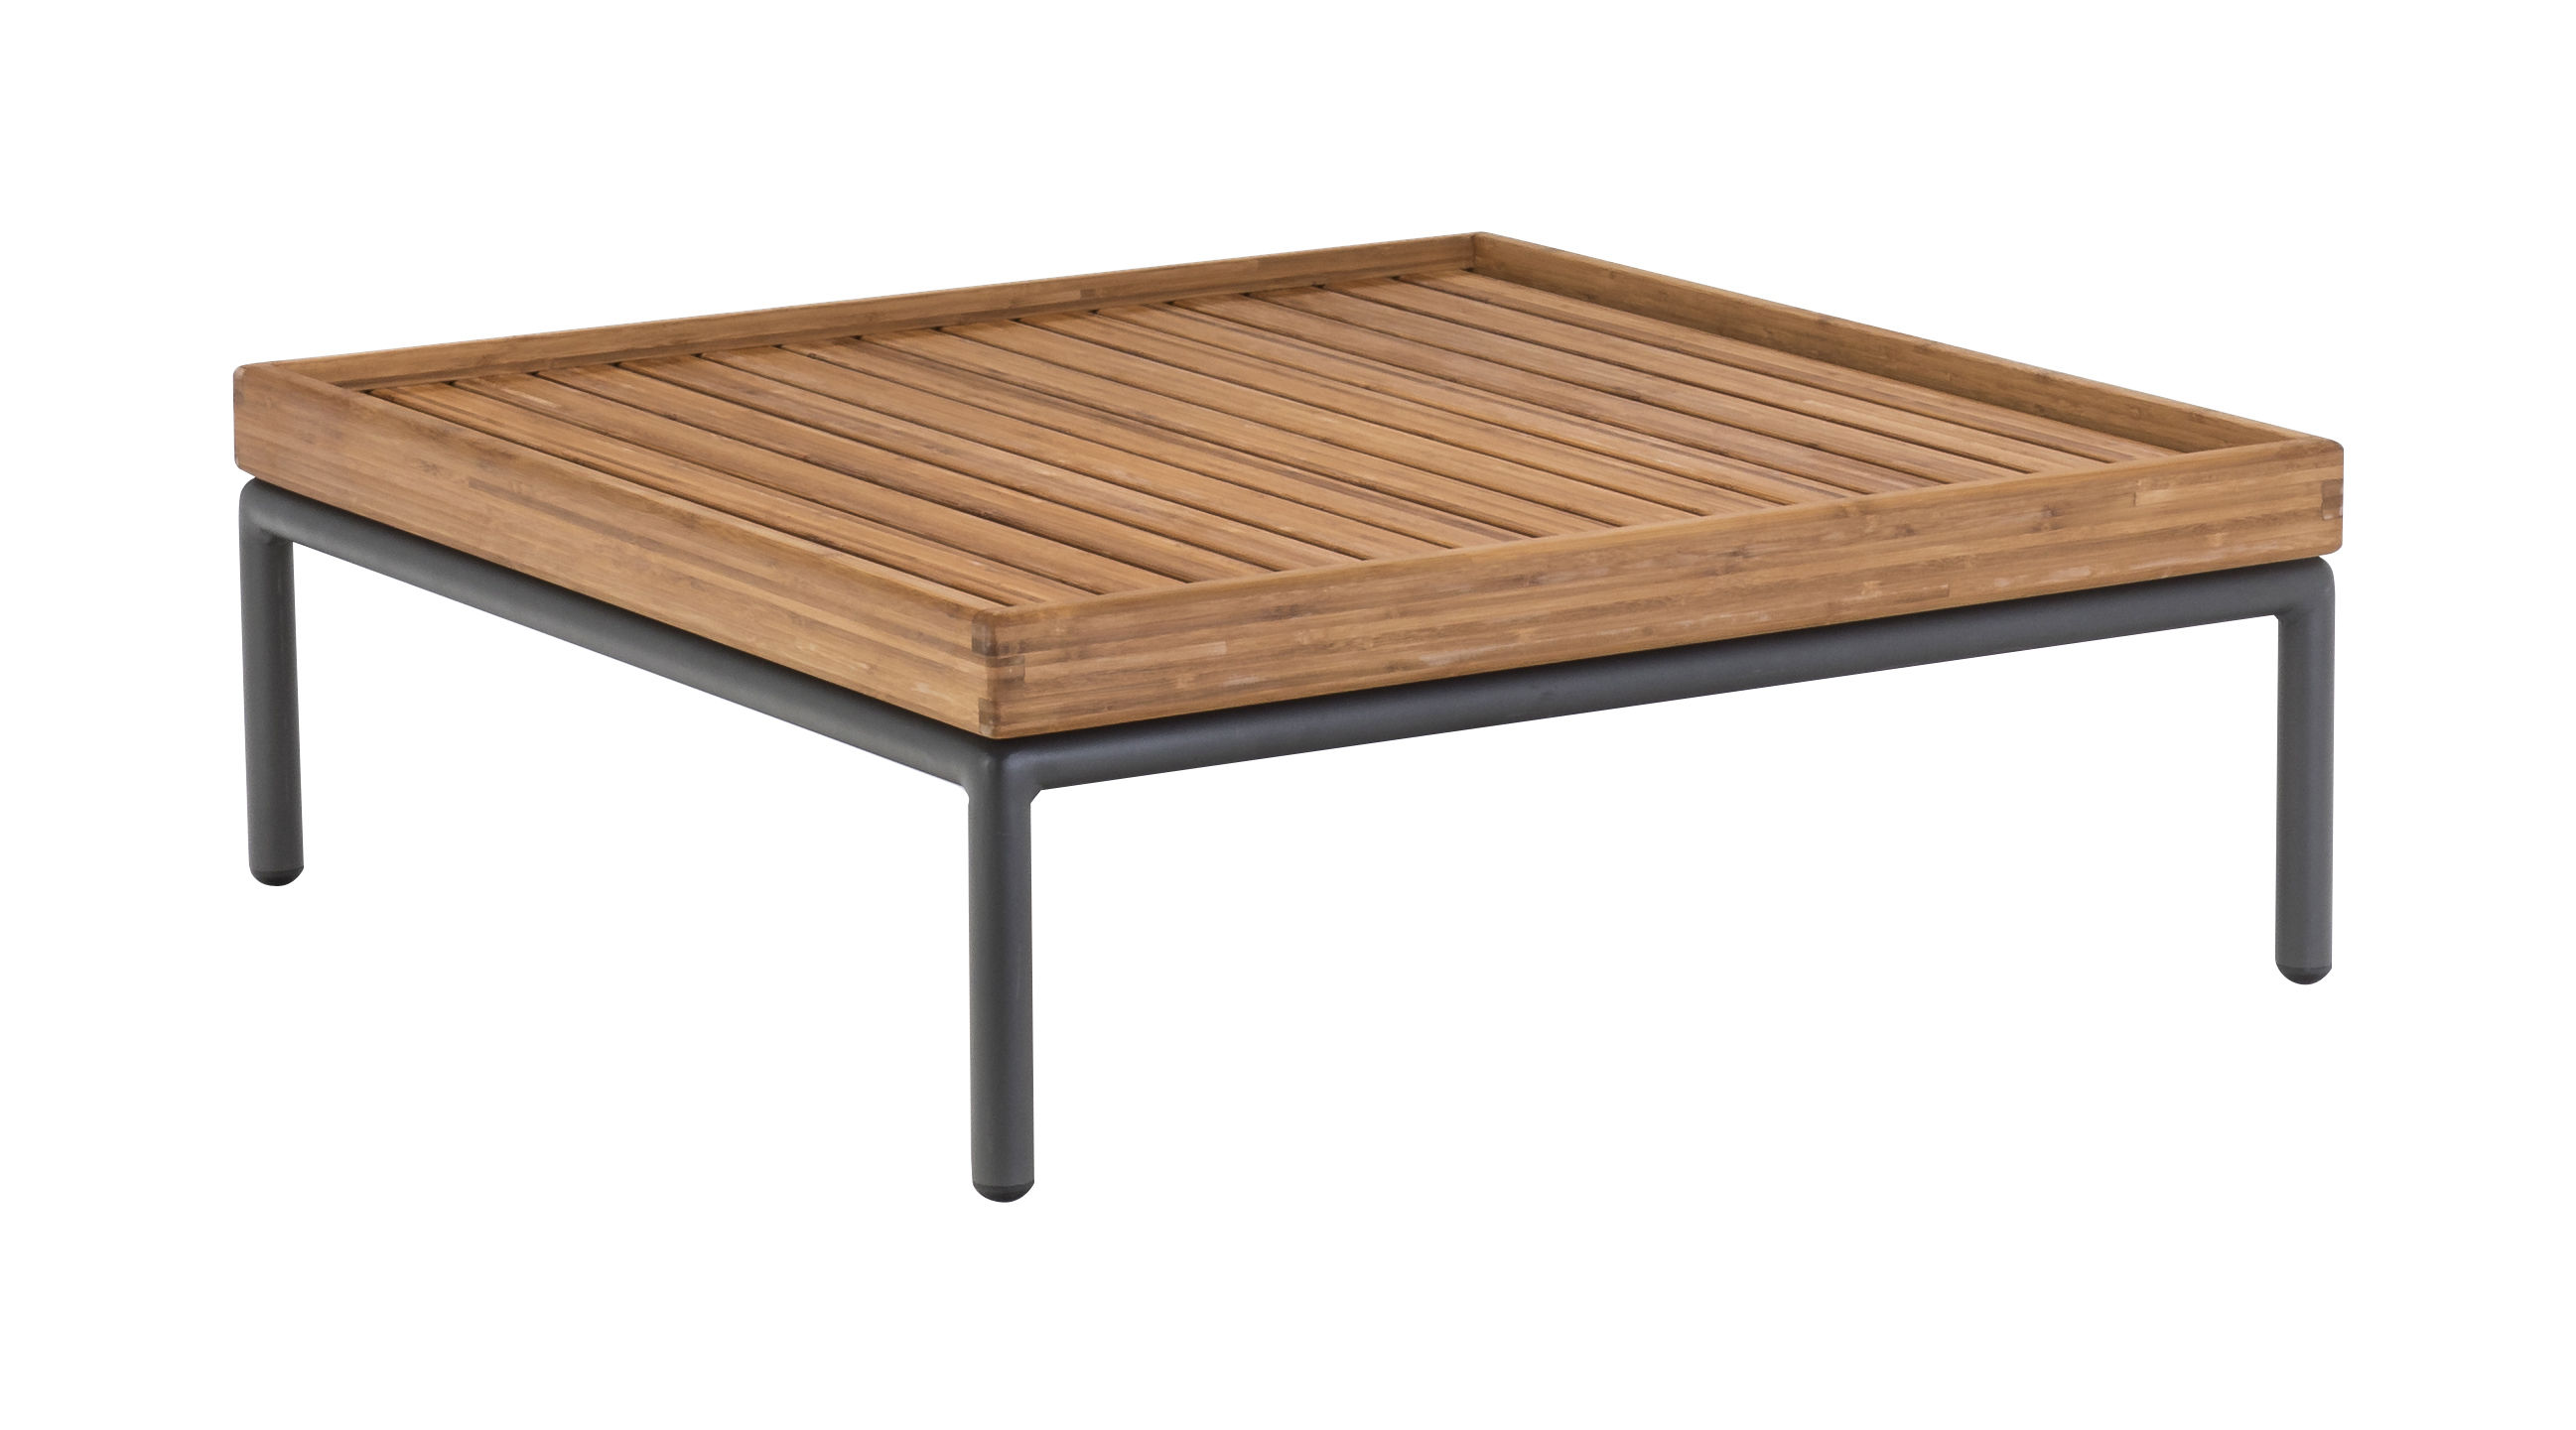 Furniture - Coffee Tables - Level Coffee table - 81 x 81 cm / Bamboo by Houe - Bamboo / Grey legs - Bamboo, Powder coated aluminium